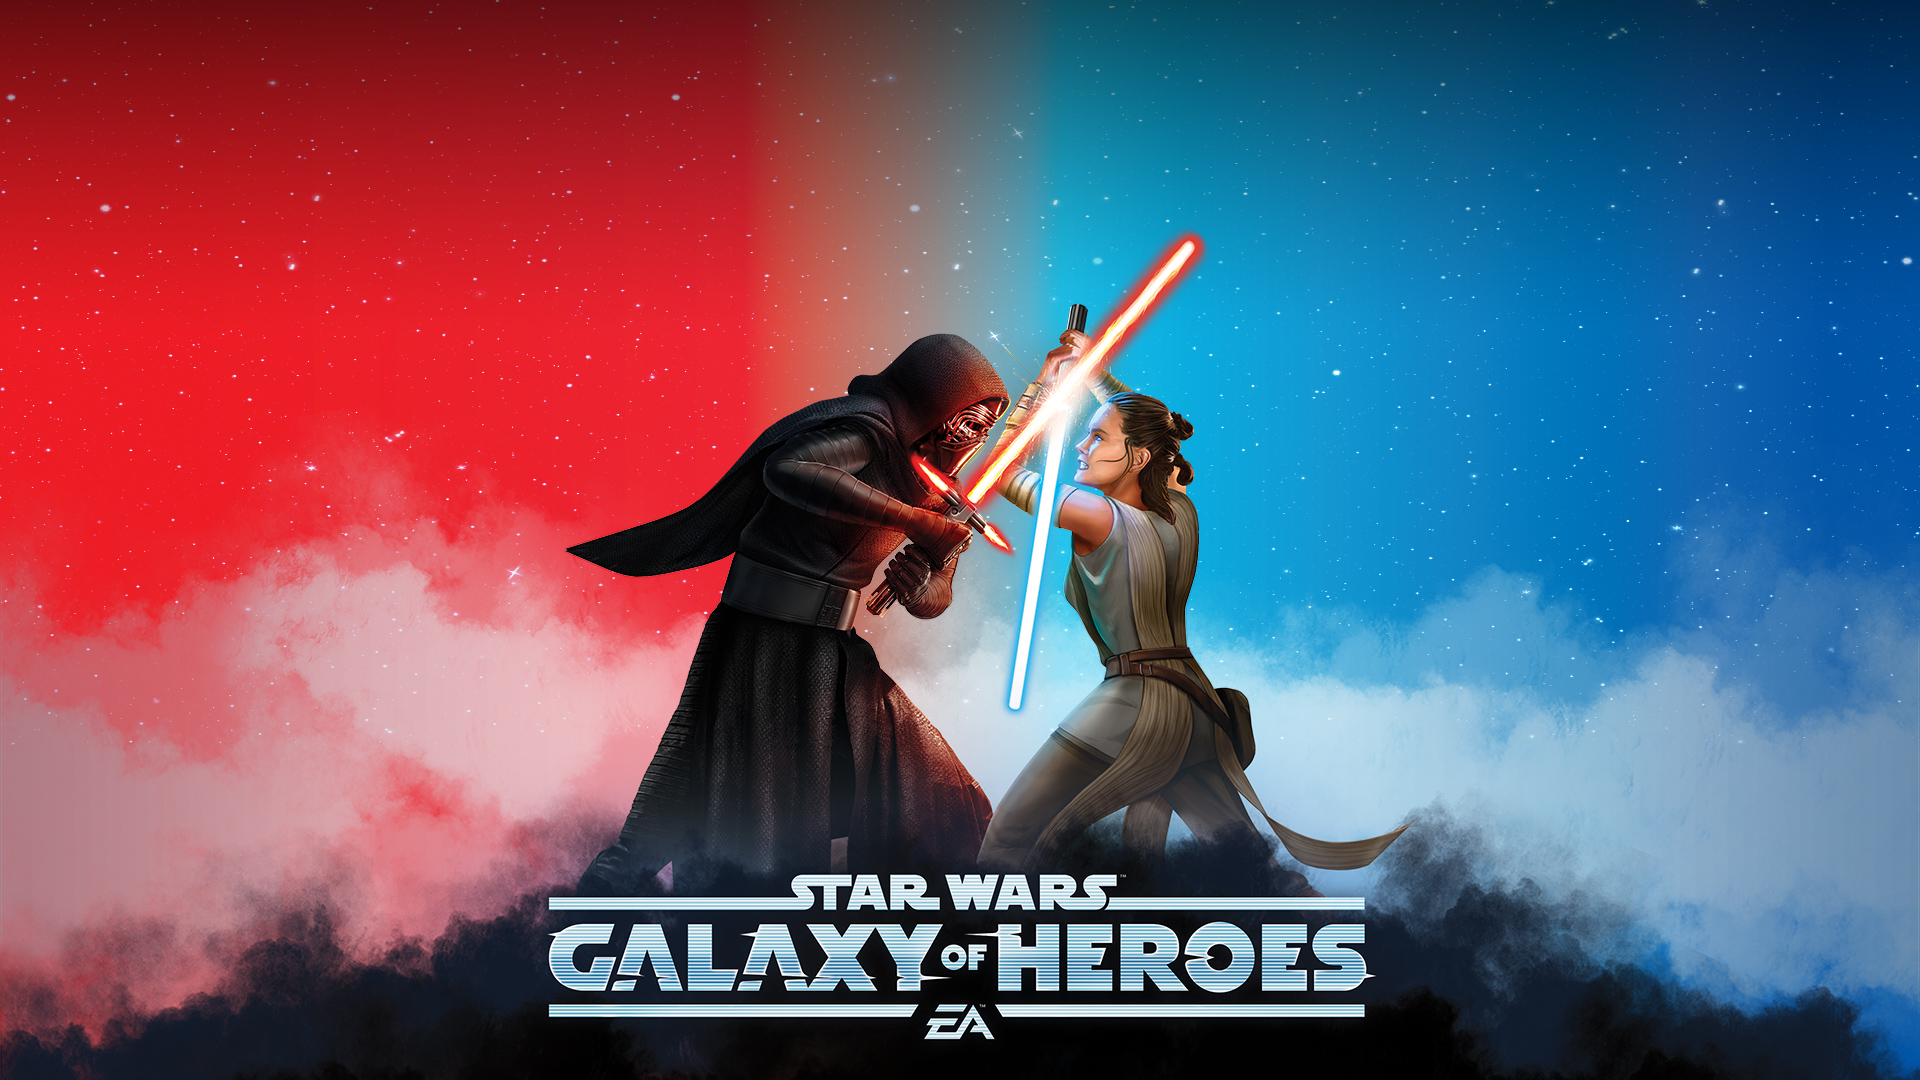 star wars galaxy of heroes, hd games, 4k wallpapers, images